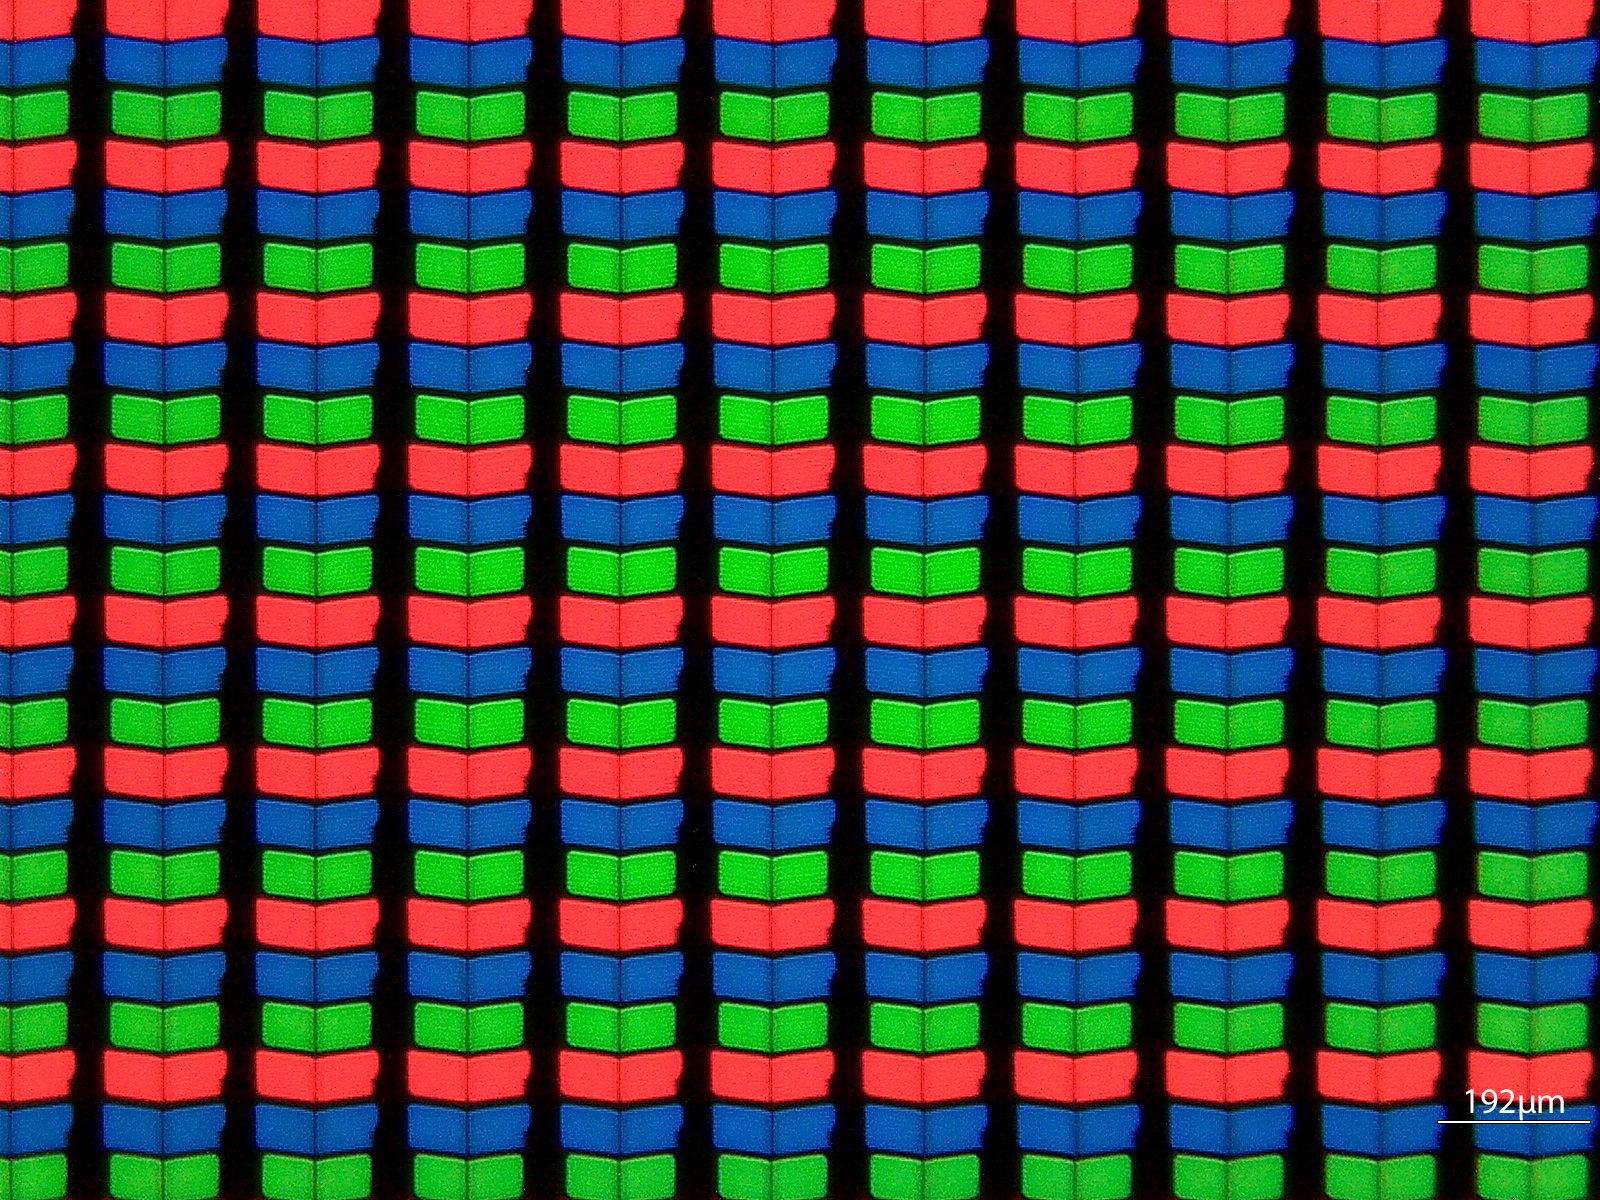 Going Into the Pixel: Retina Display Under a Microscope ...